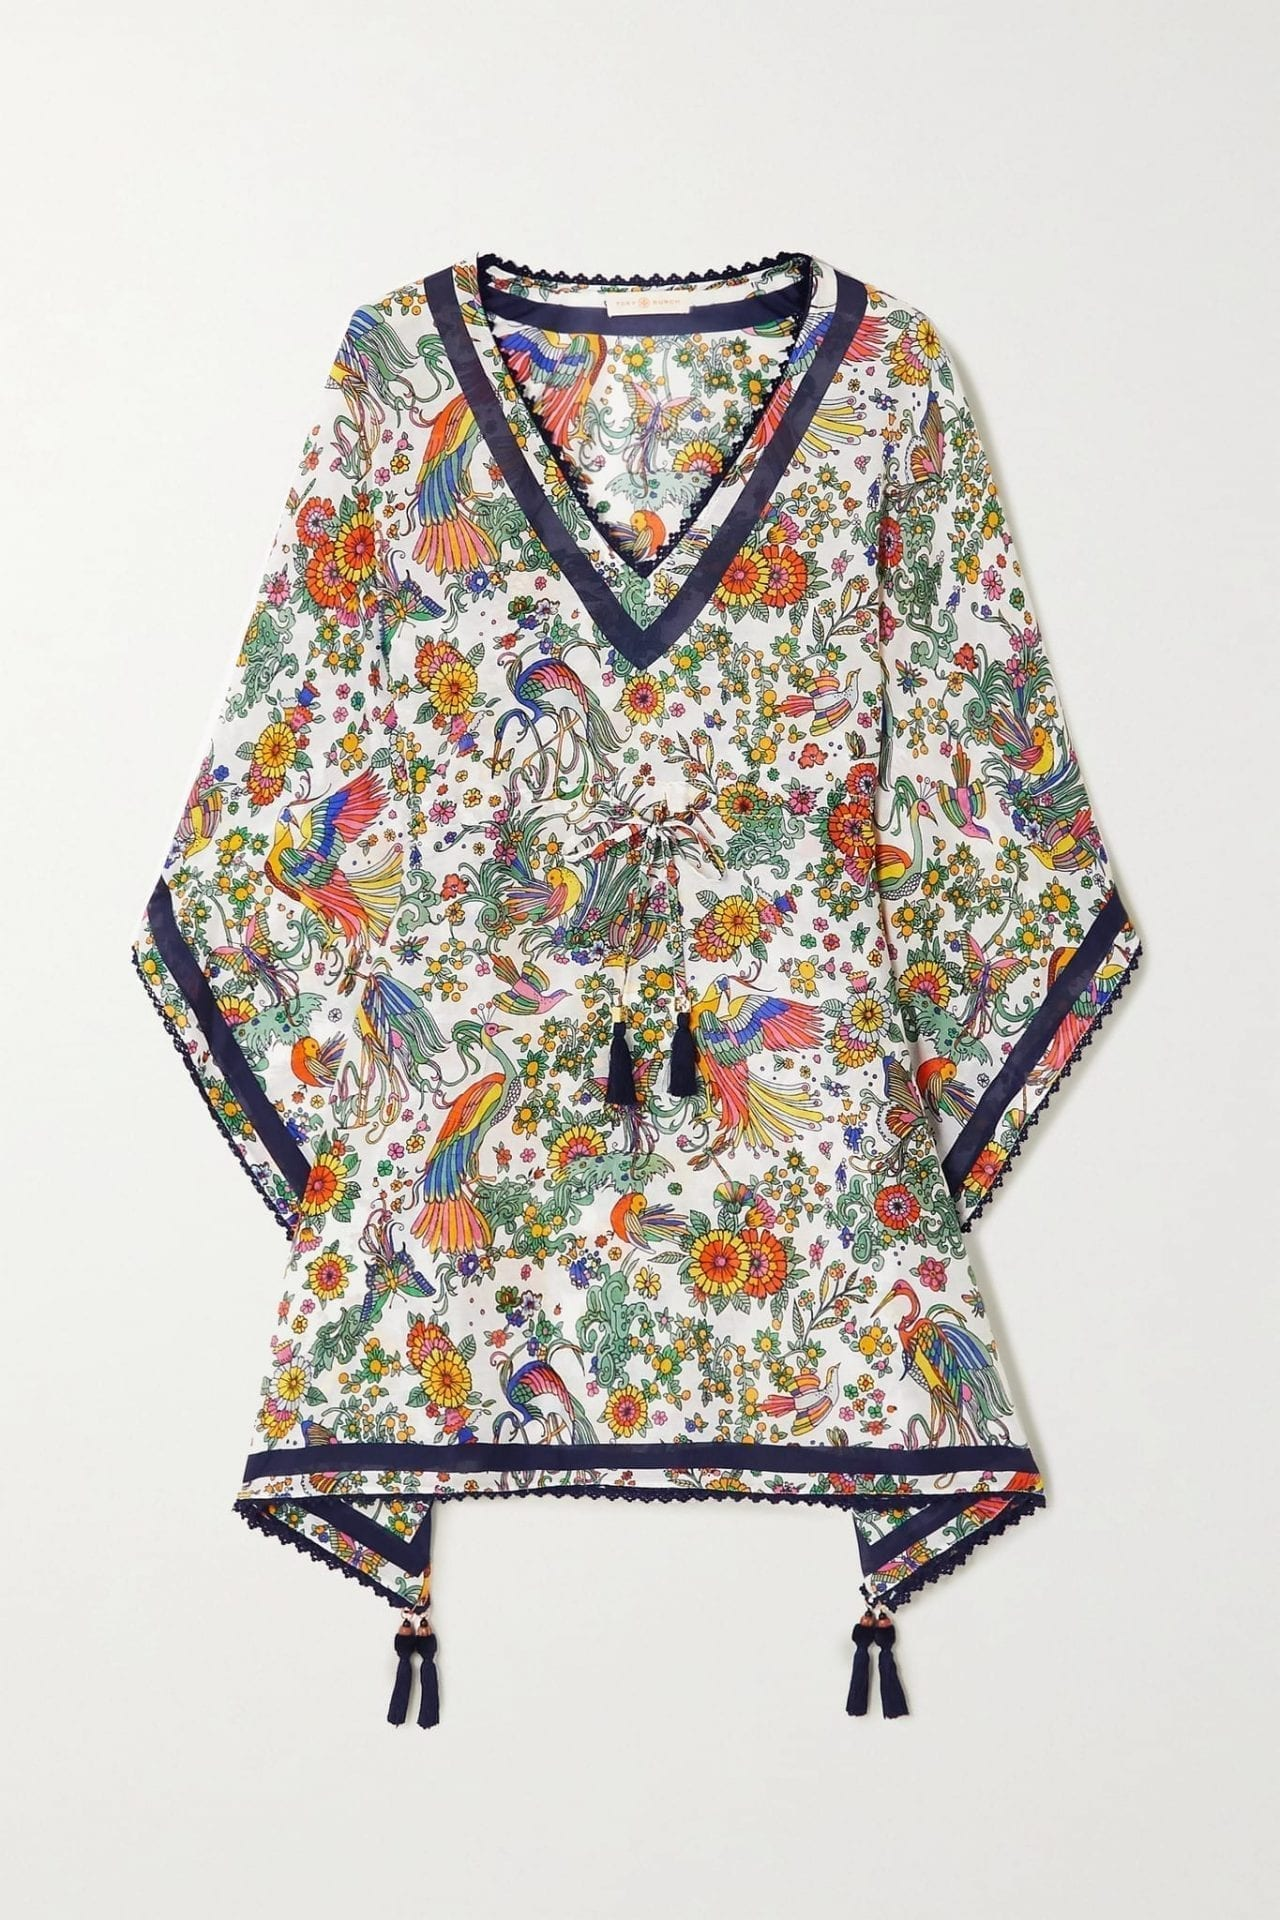 TORY BURCH Printed Cotton And Silk-blend Voile Dress